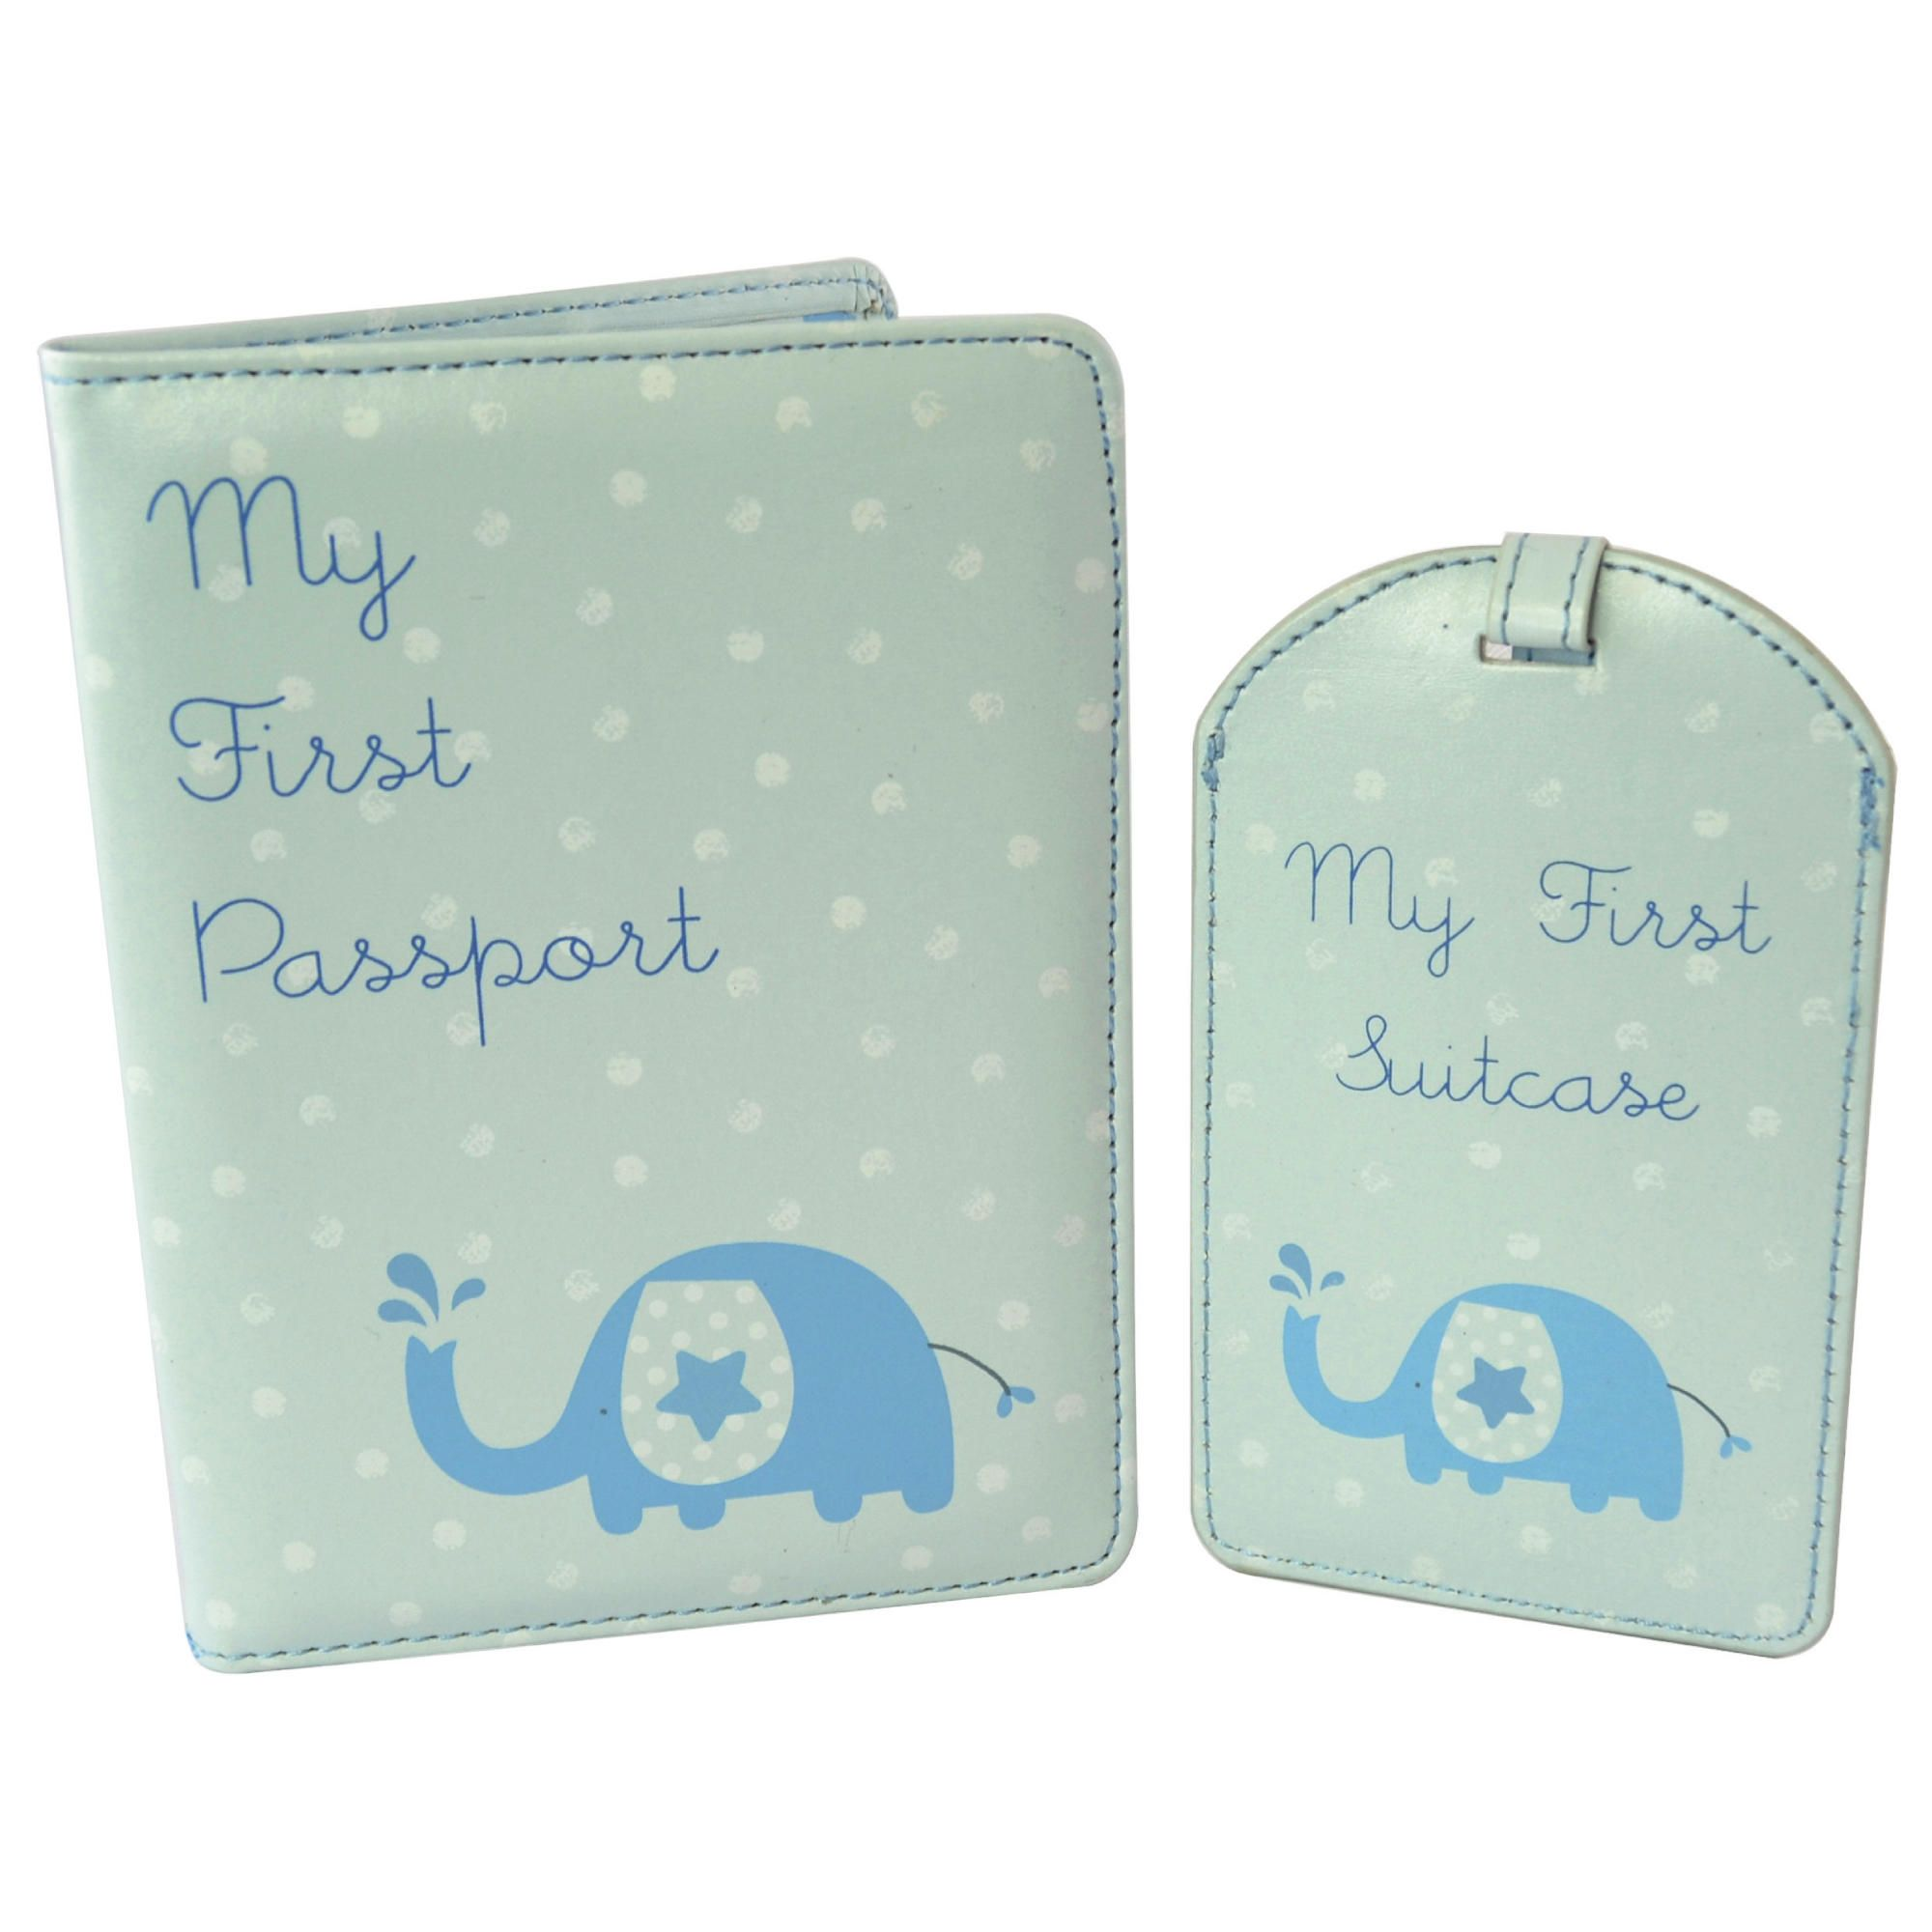 New Baby Boy Gift Tag : Tesco direct gifts make special savings today at